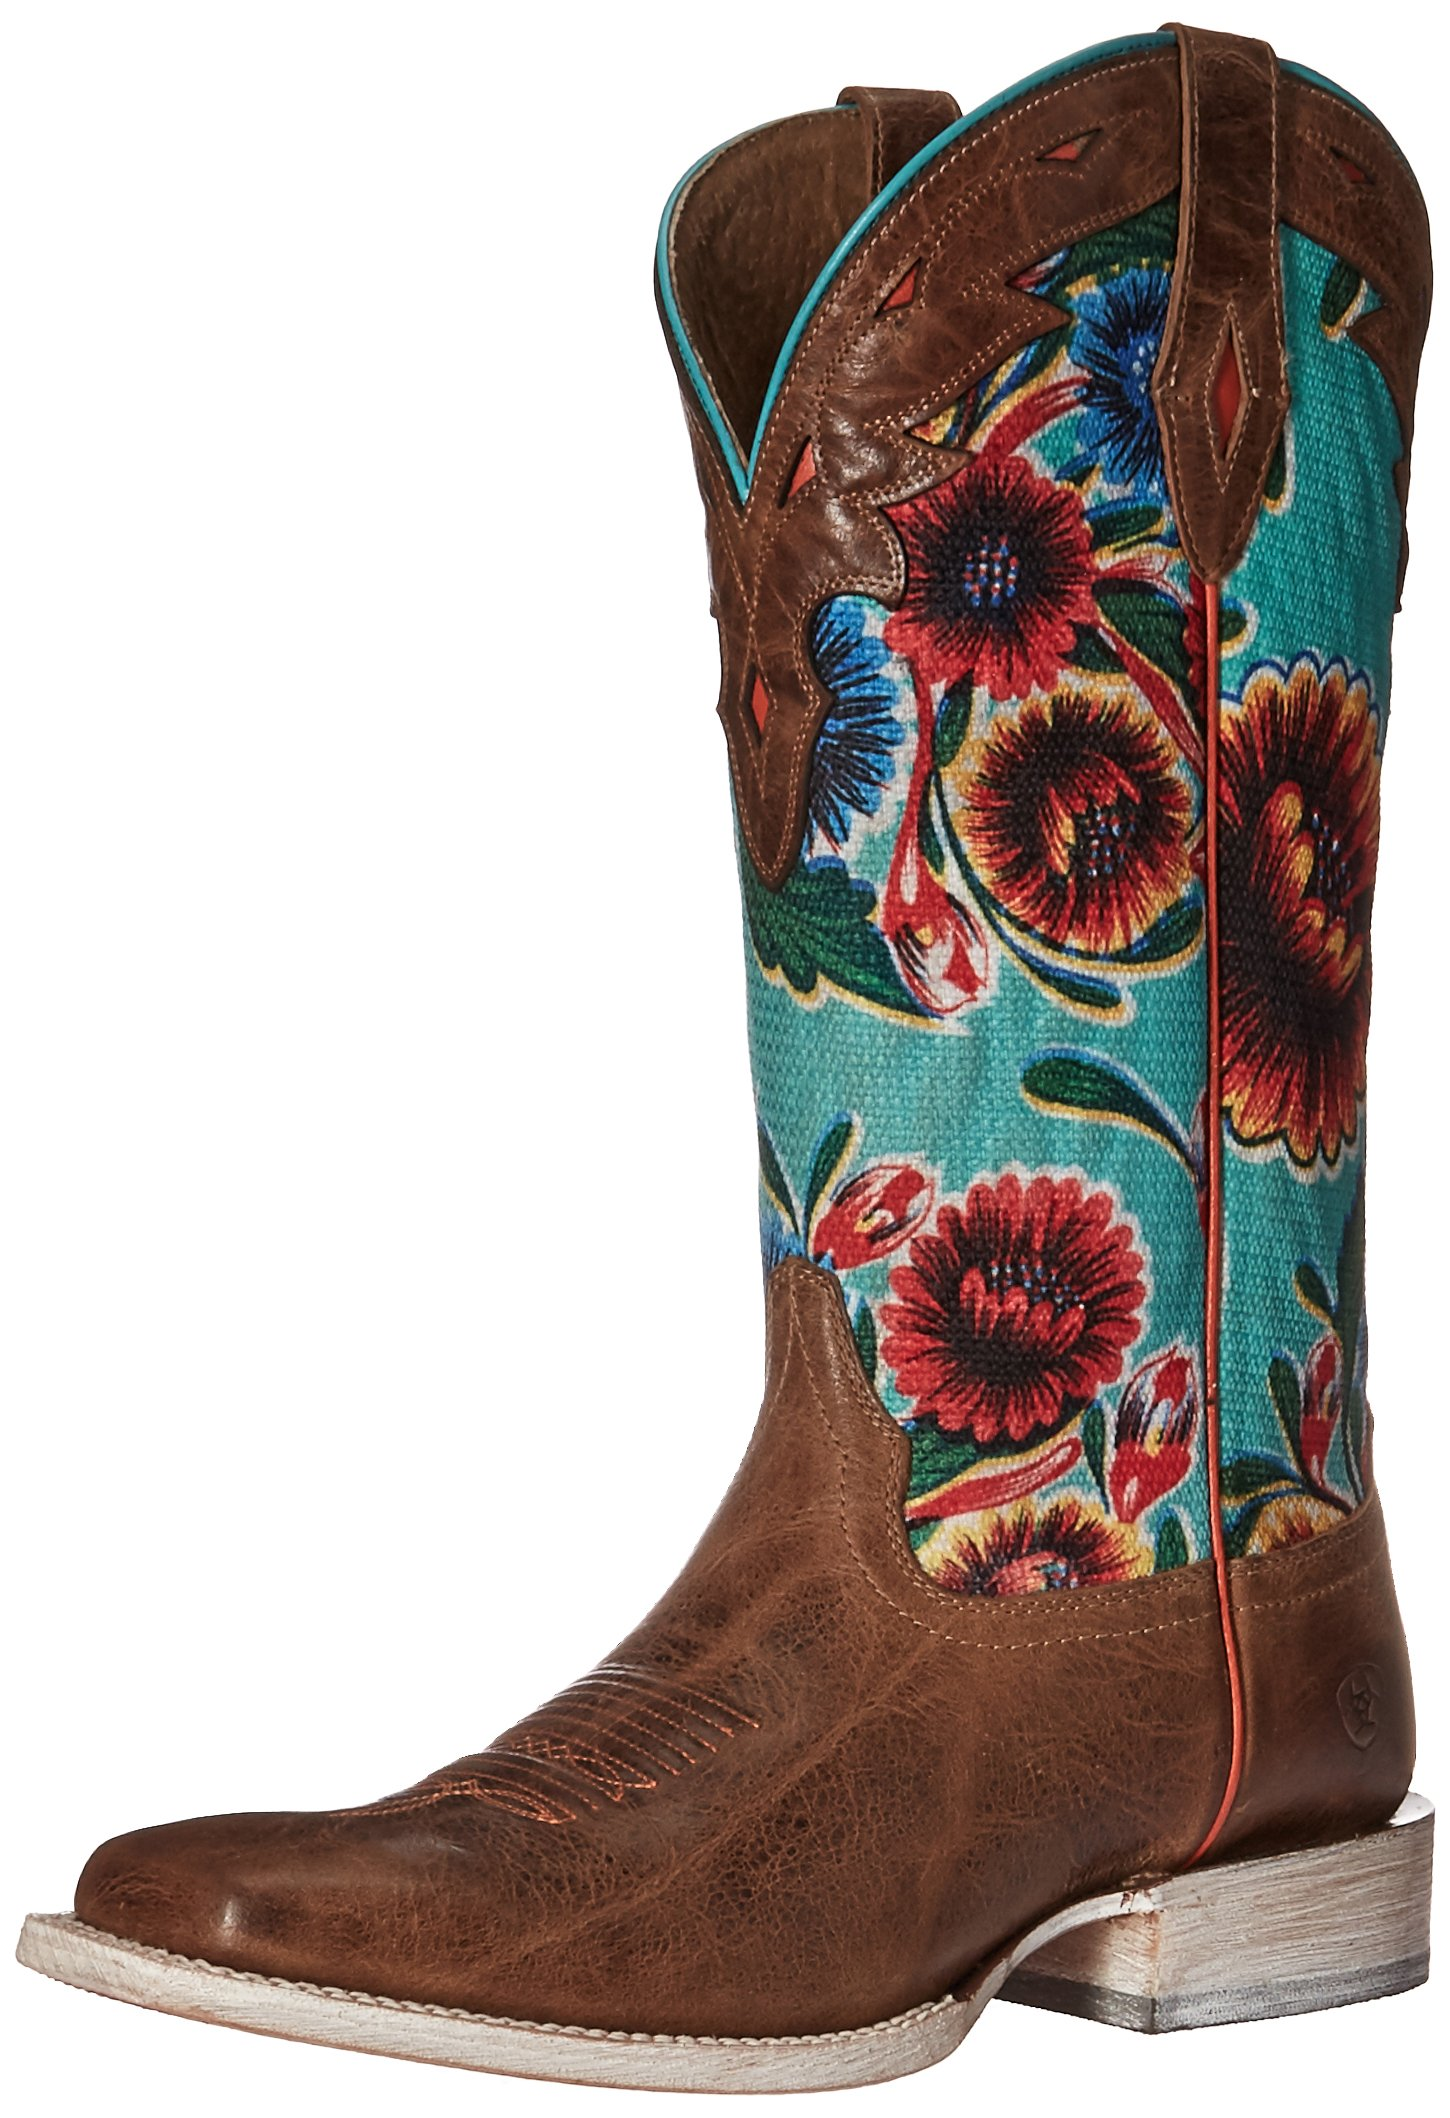 Ariat Women's Circuit Champion Western Cowboy Boot, Bitter The Dust Brown, 8 B US